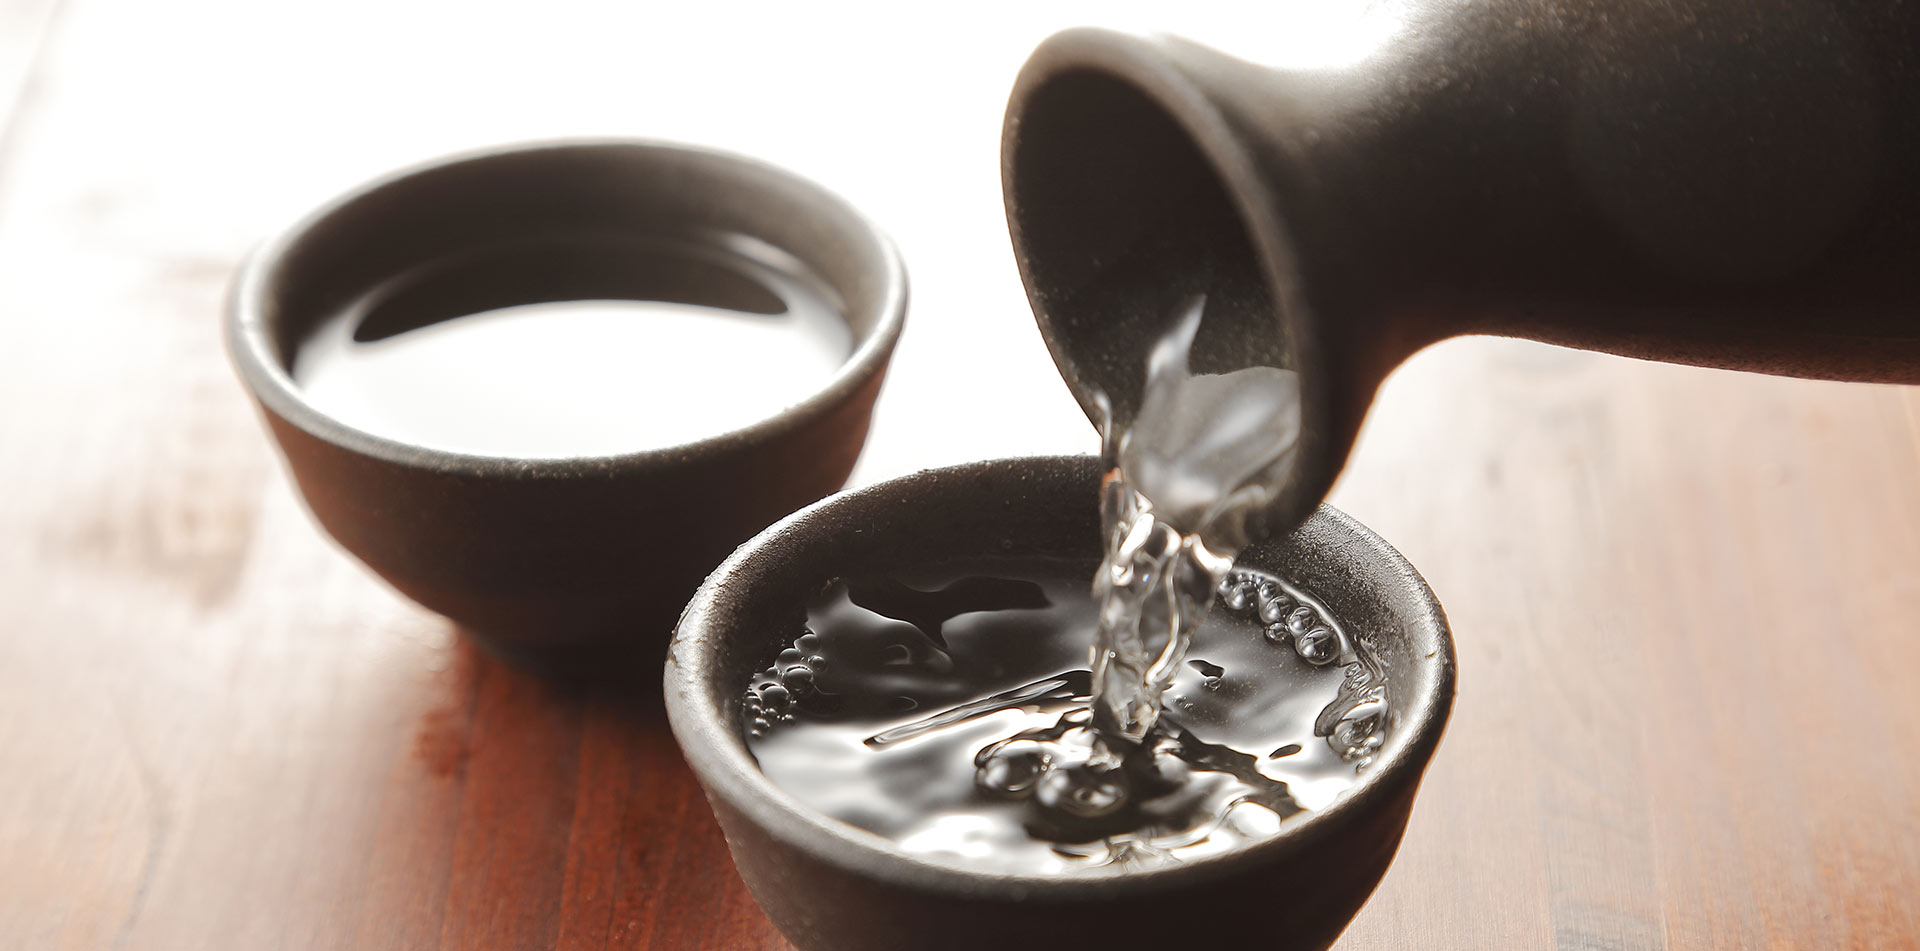 Asia Japan sake being poured into earthenware cups - luxury vacation destinations